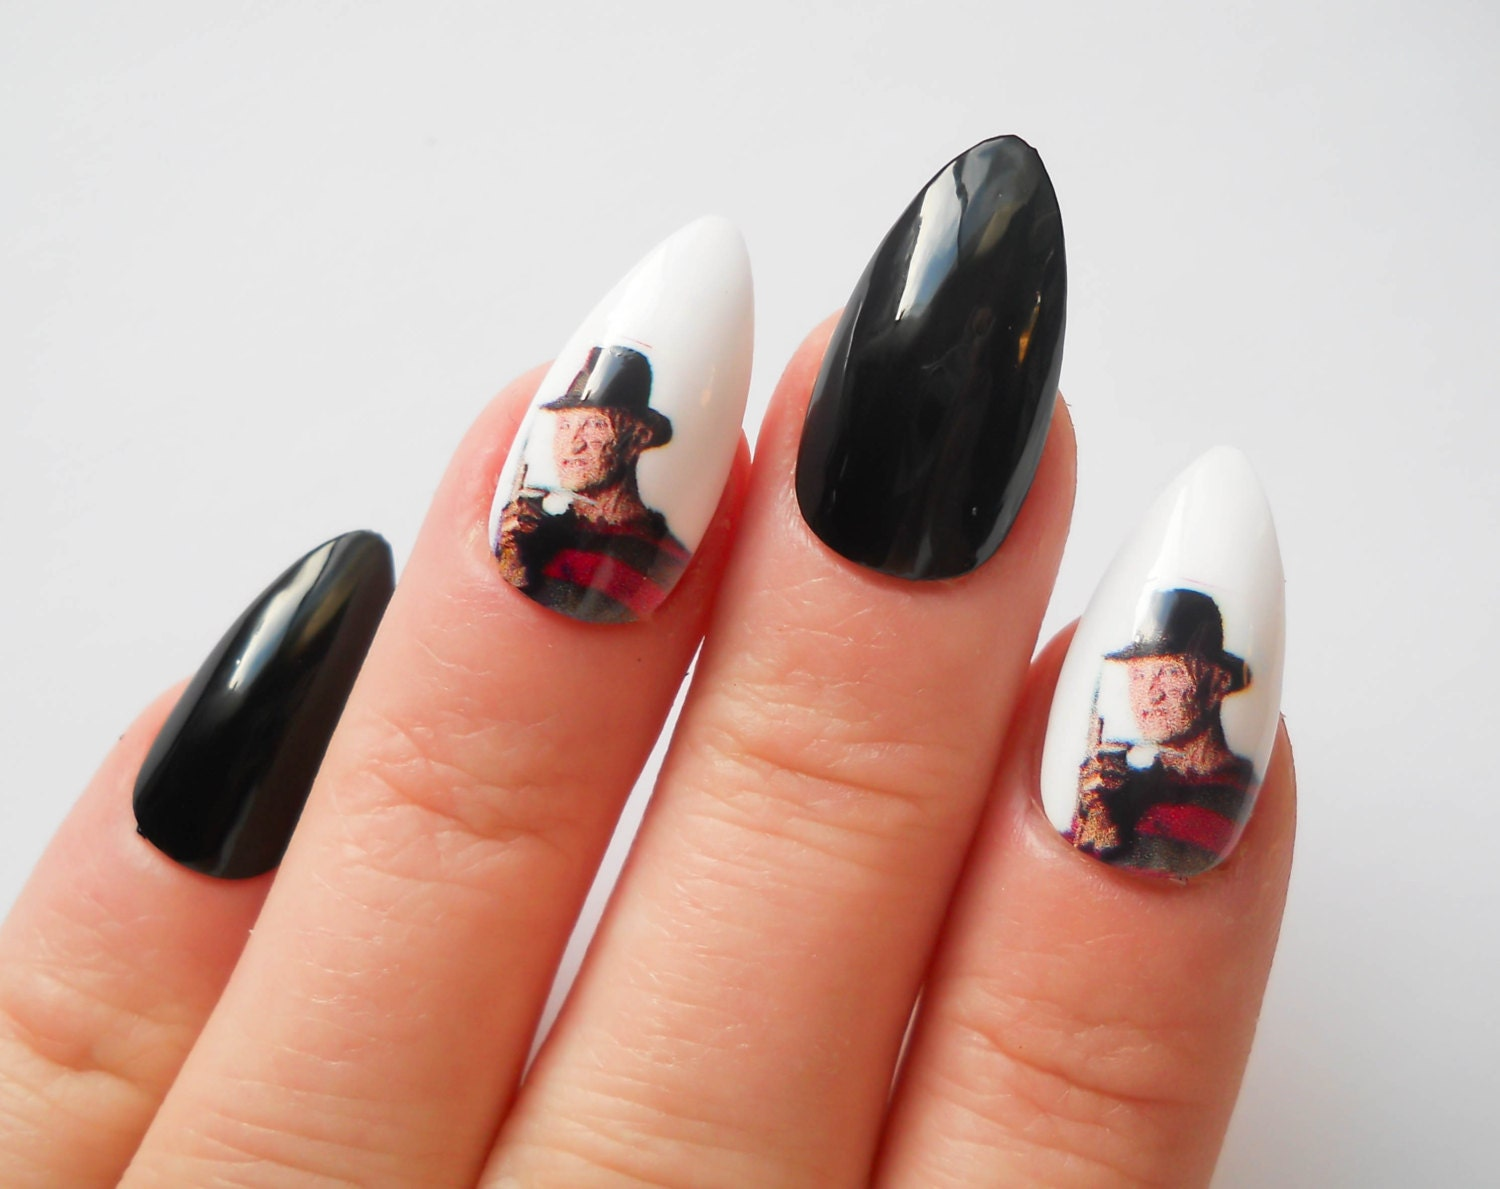 Freddy Krueger Stiletto Nails, Fake Nails, False Nails, Acrylic ...